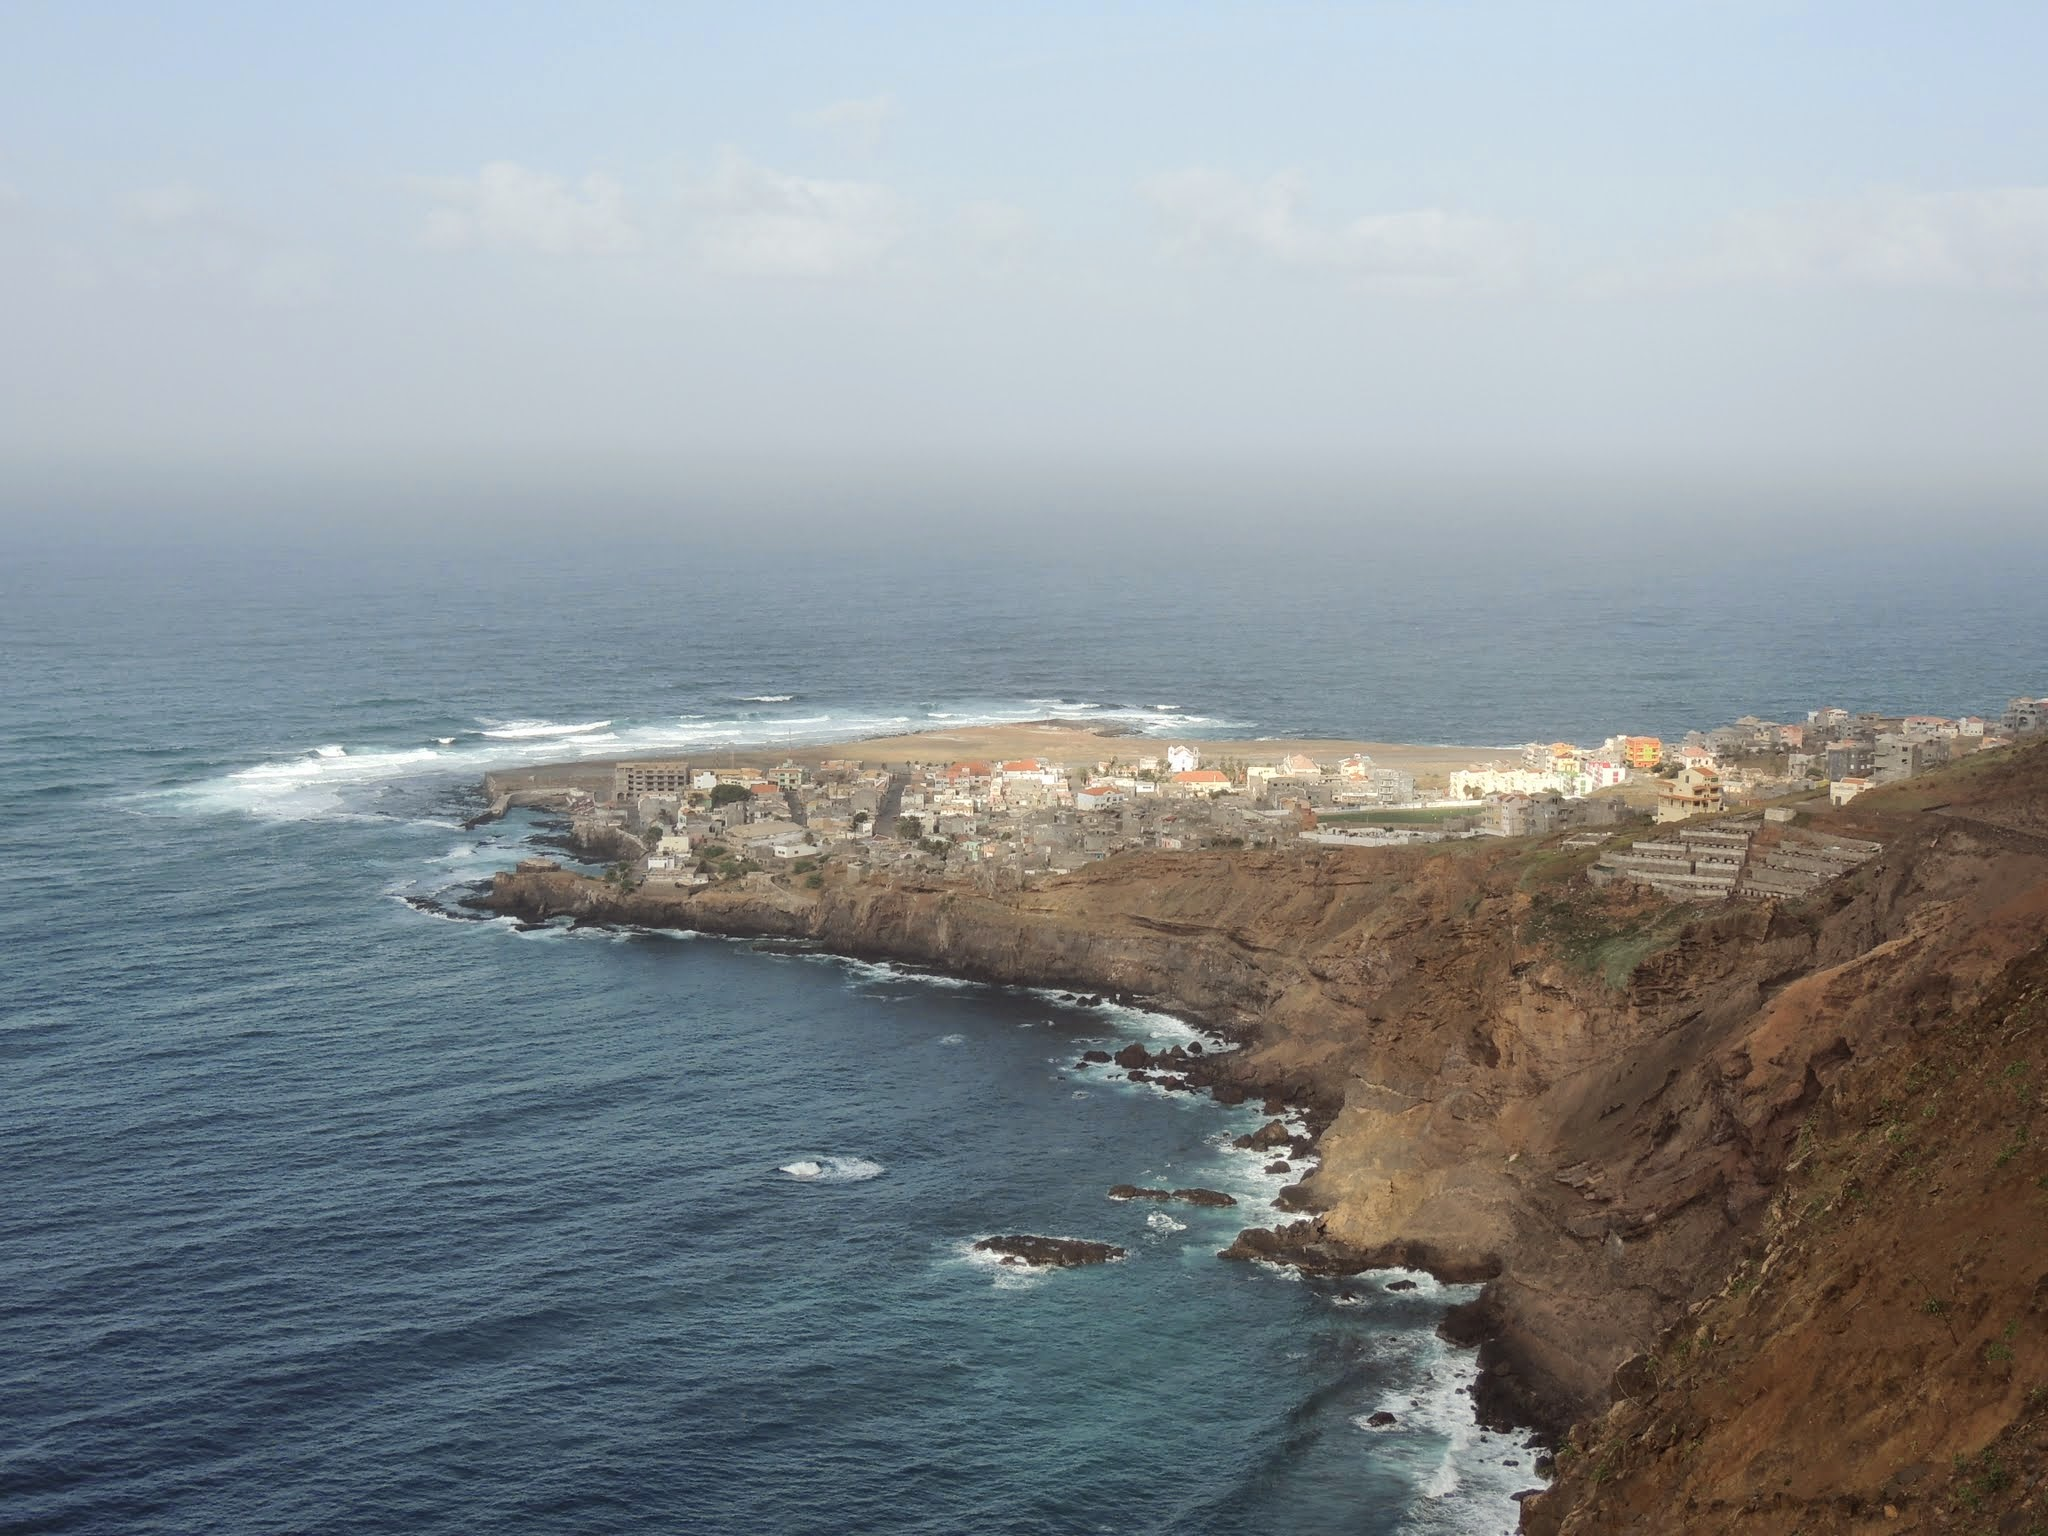 File:Ponta do Sol Cap Vert.JPG - Wikimedia Commons